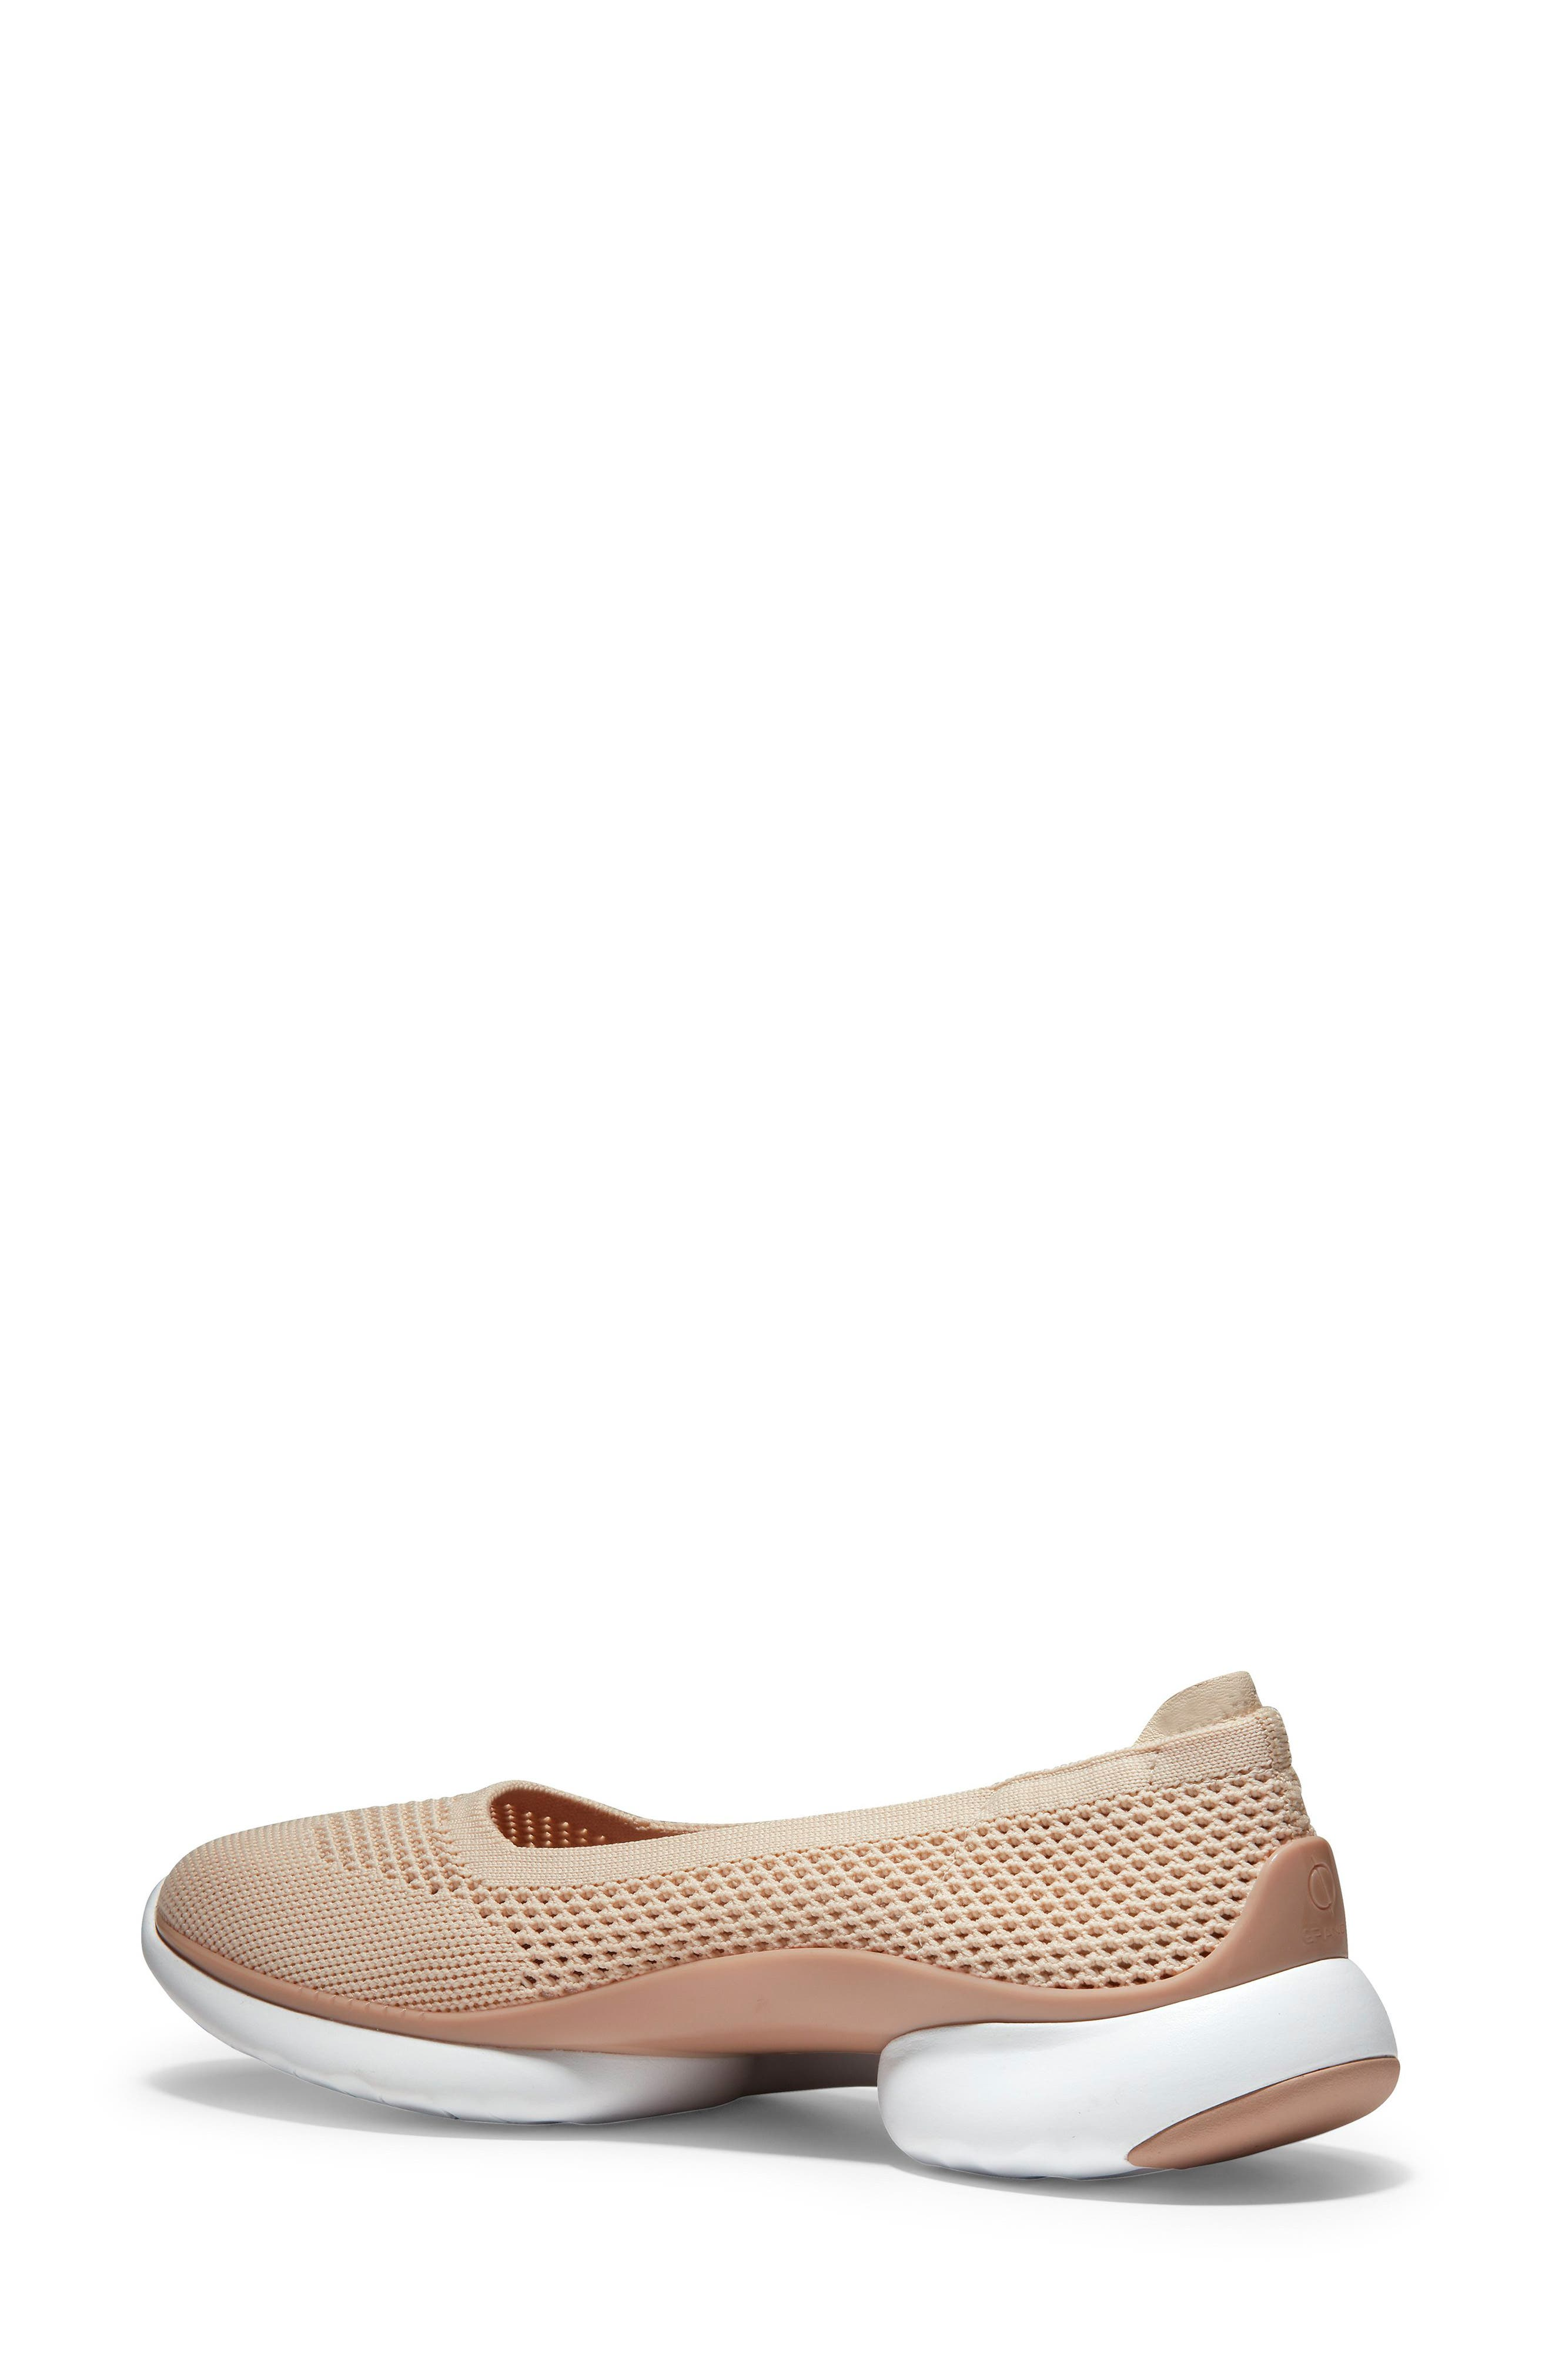 COLE HAAN, ZeroGrand Knit Sneaker, Alternate thumbnail 2, color, SAND/ ROSE KNIT/ LEATHER